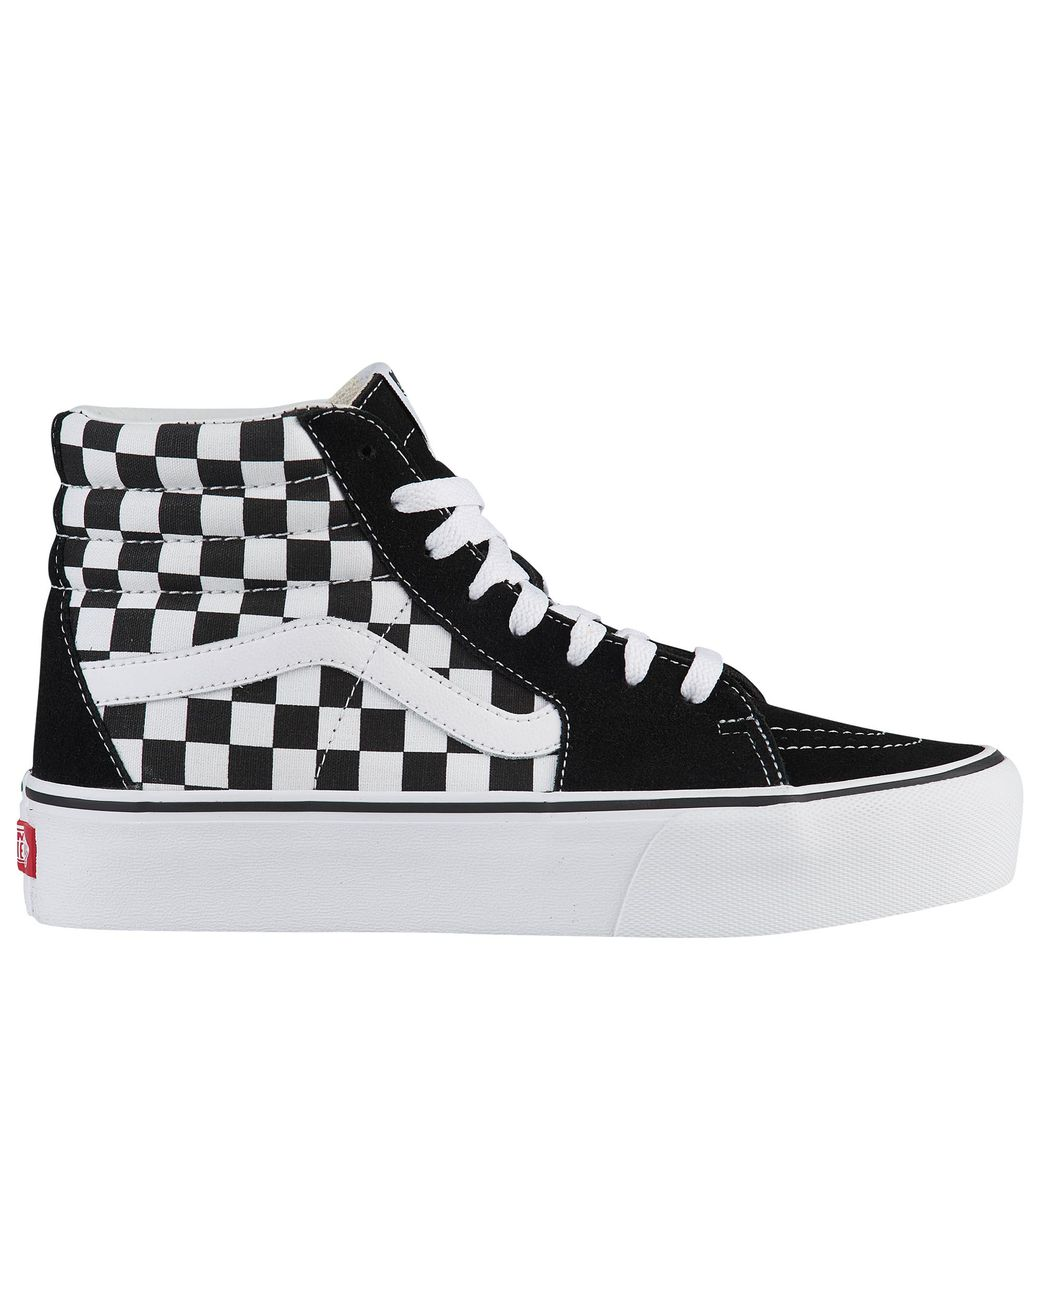 7e5f05409c4d56 Lyst - Vans Sk8-hi Platform 2.0 in Black - Save 35%